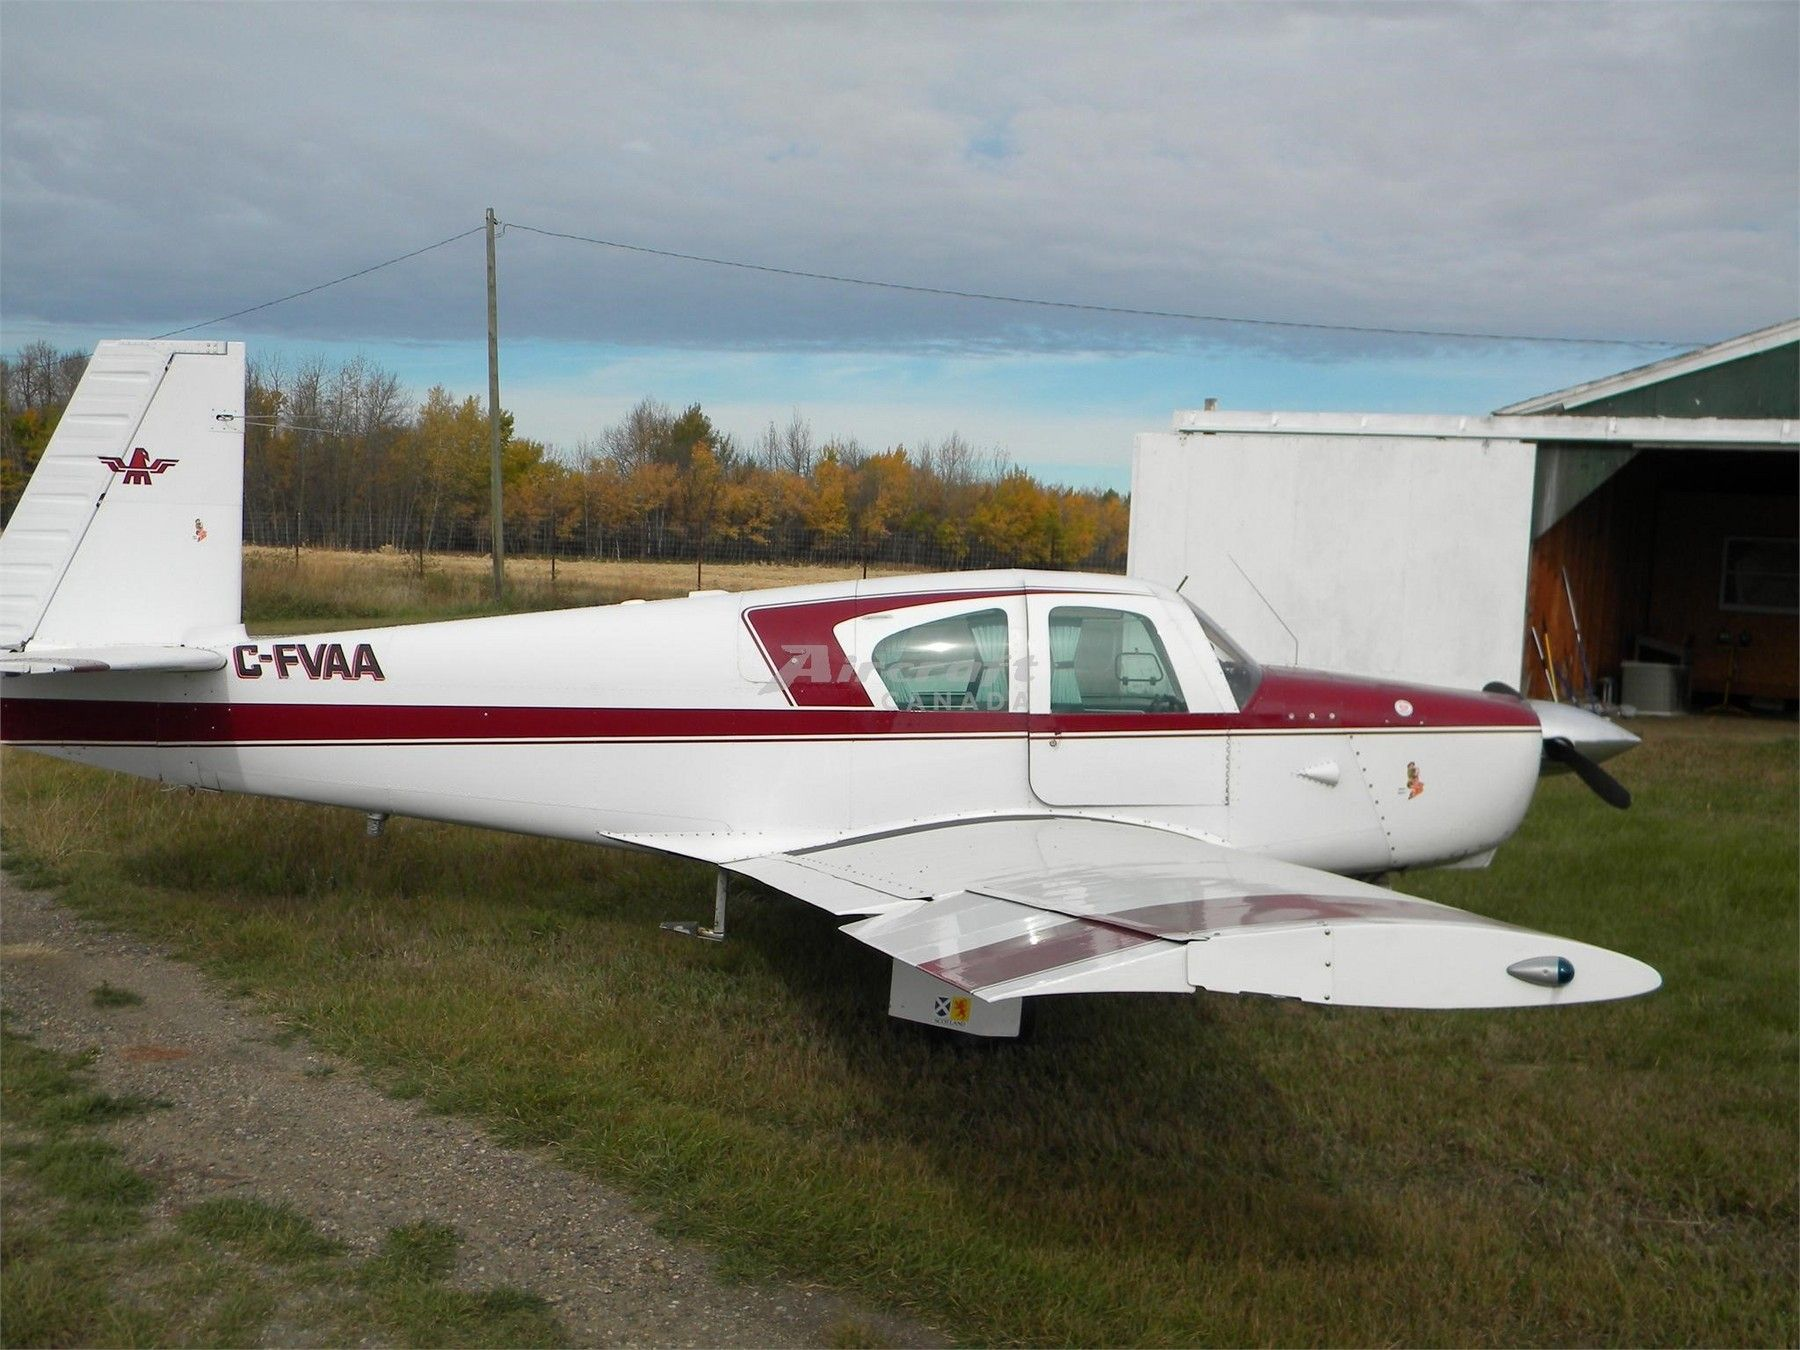 1959 Mooney M20A for sale in AB Canada => http//www